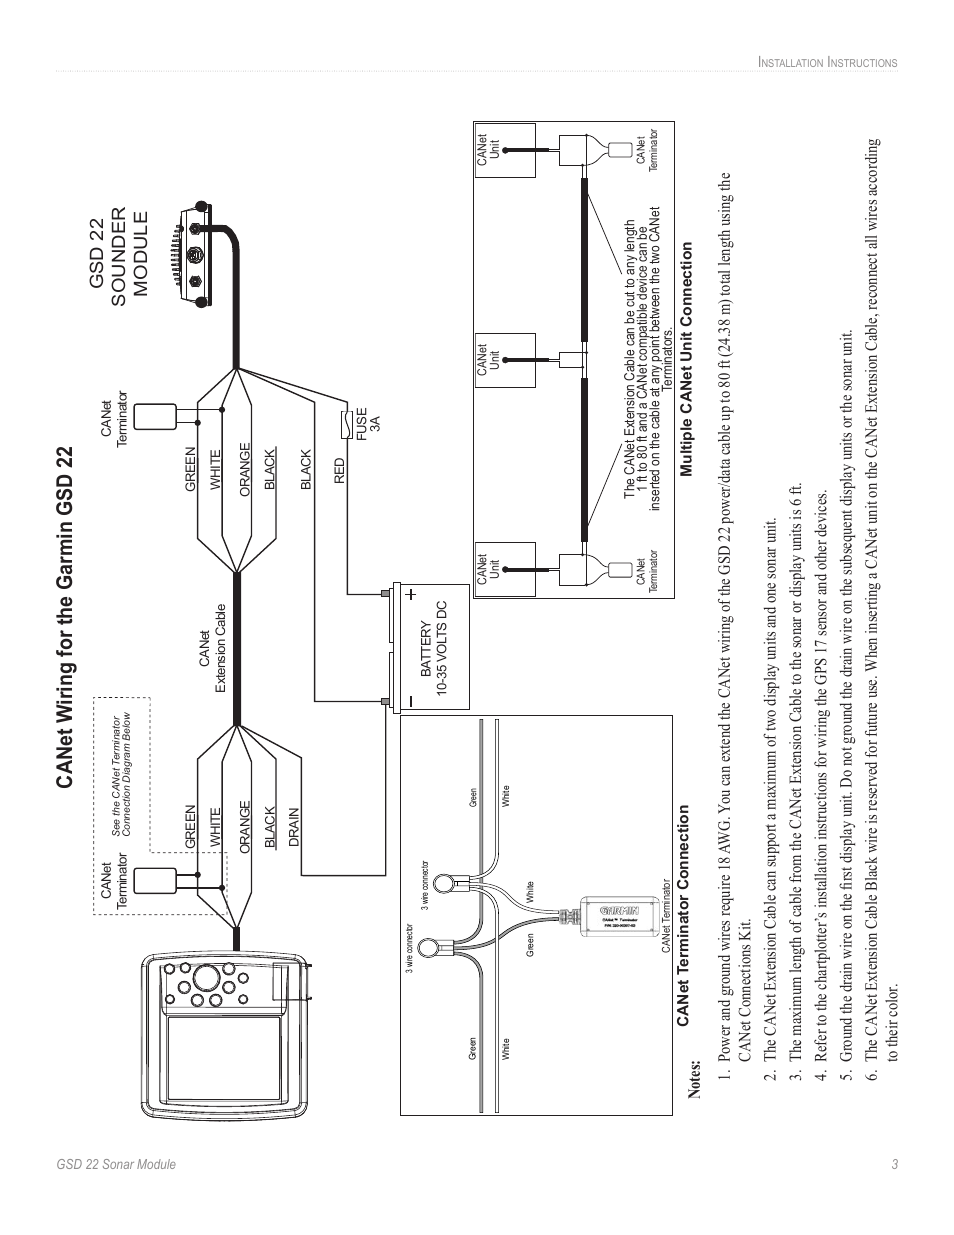 Garmin Gsd 22 Wiring Diagram Opinions About Uniden Nmea Cable For 4212 Atx Connector Elsalvadorla Installation Manual Gpsmap 235 Sounder